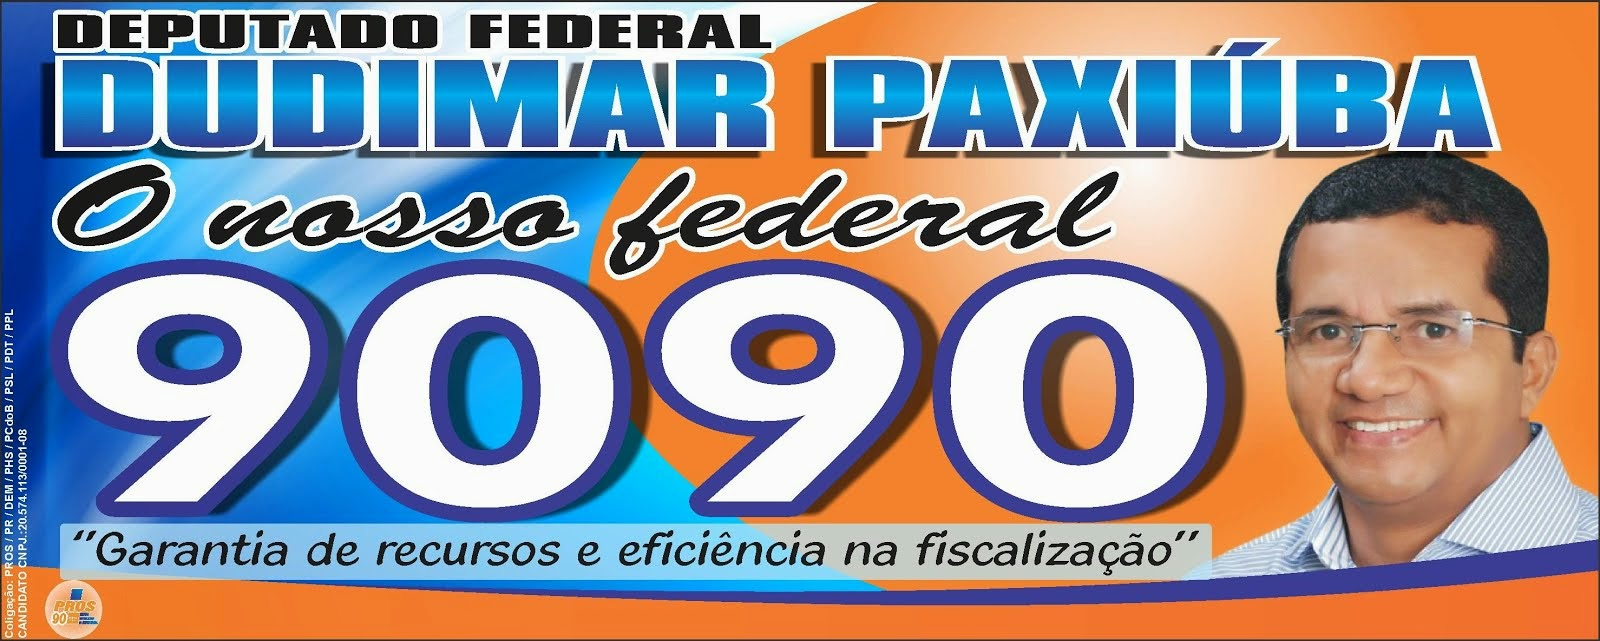 FEDERAL É DUDIMAR